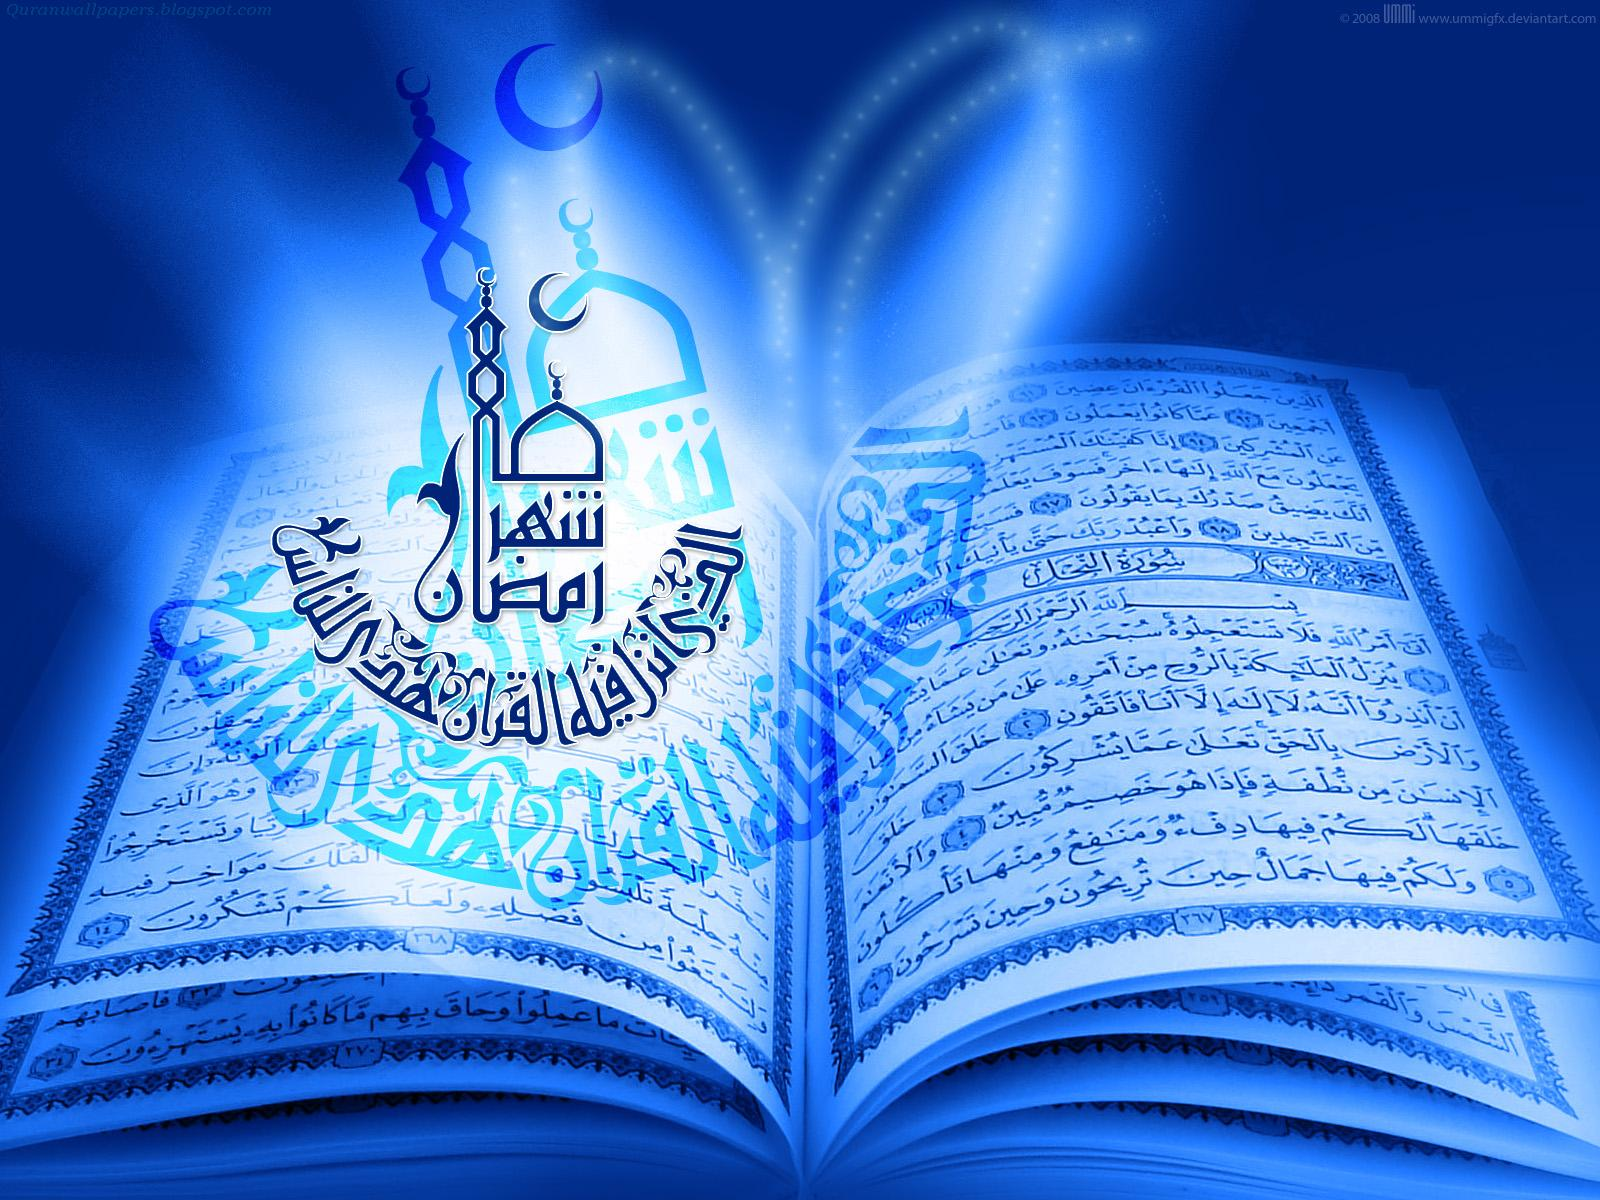 Salaam Ramadan ISLAM QURAN WALLPAPERS 2011 Wallpaper 2011 ramadan